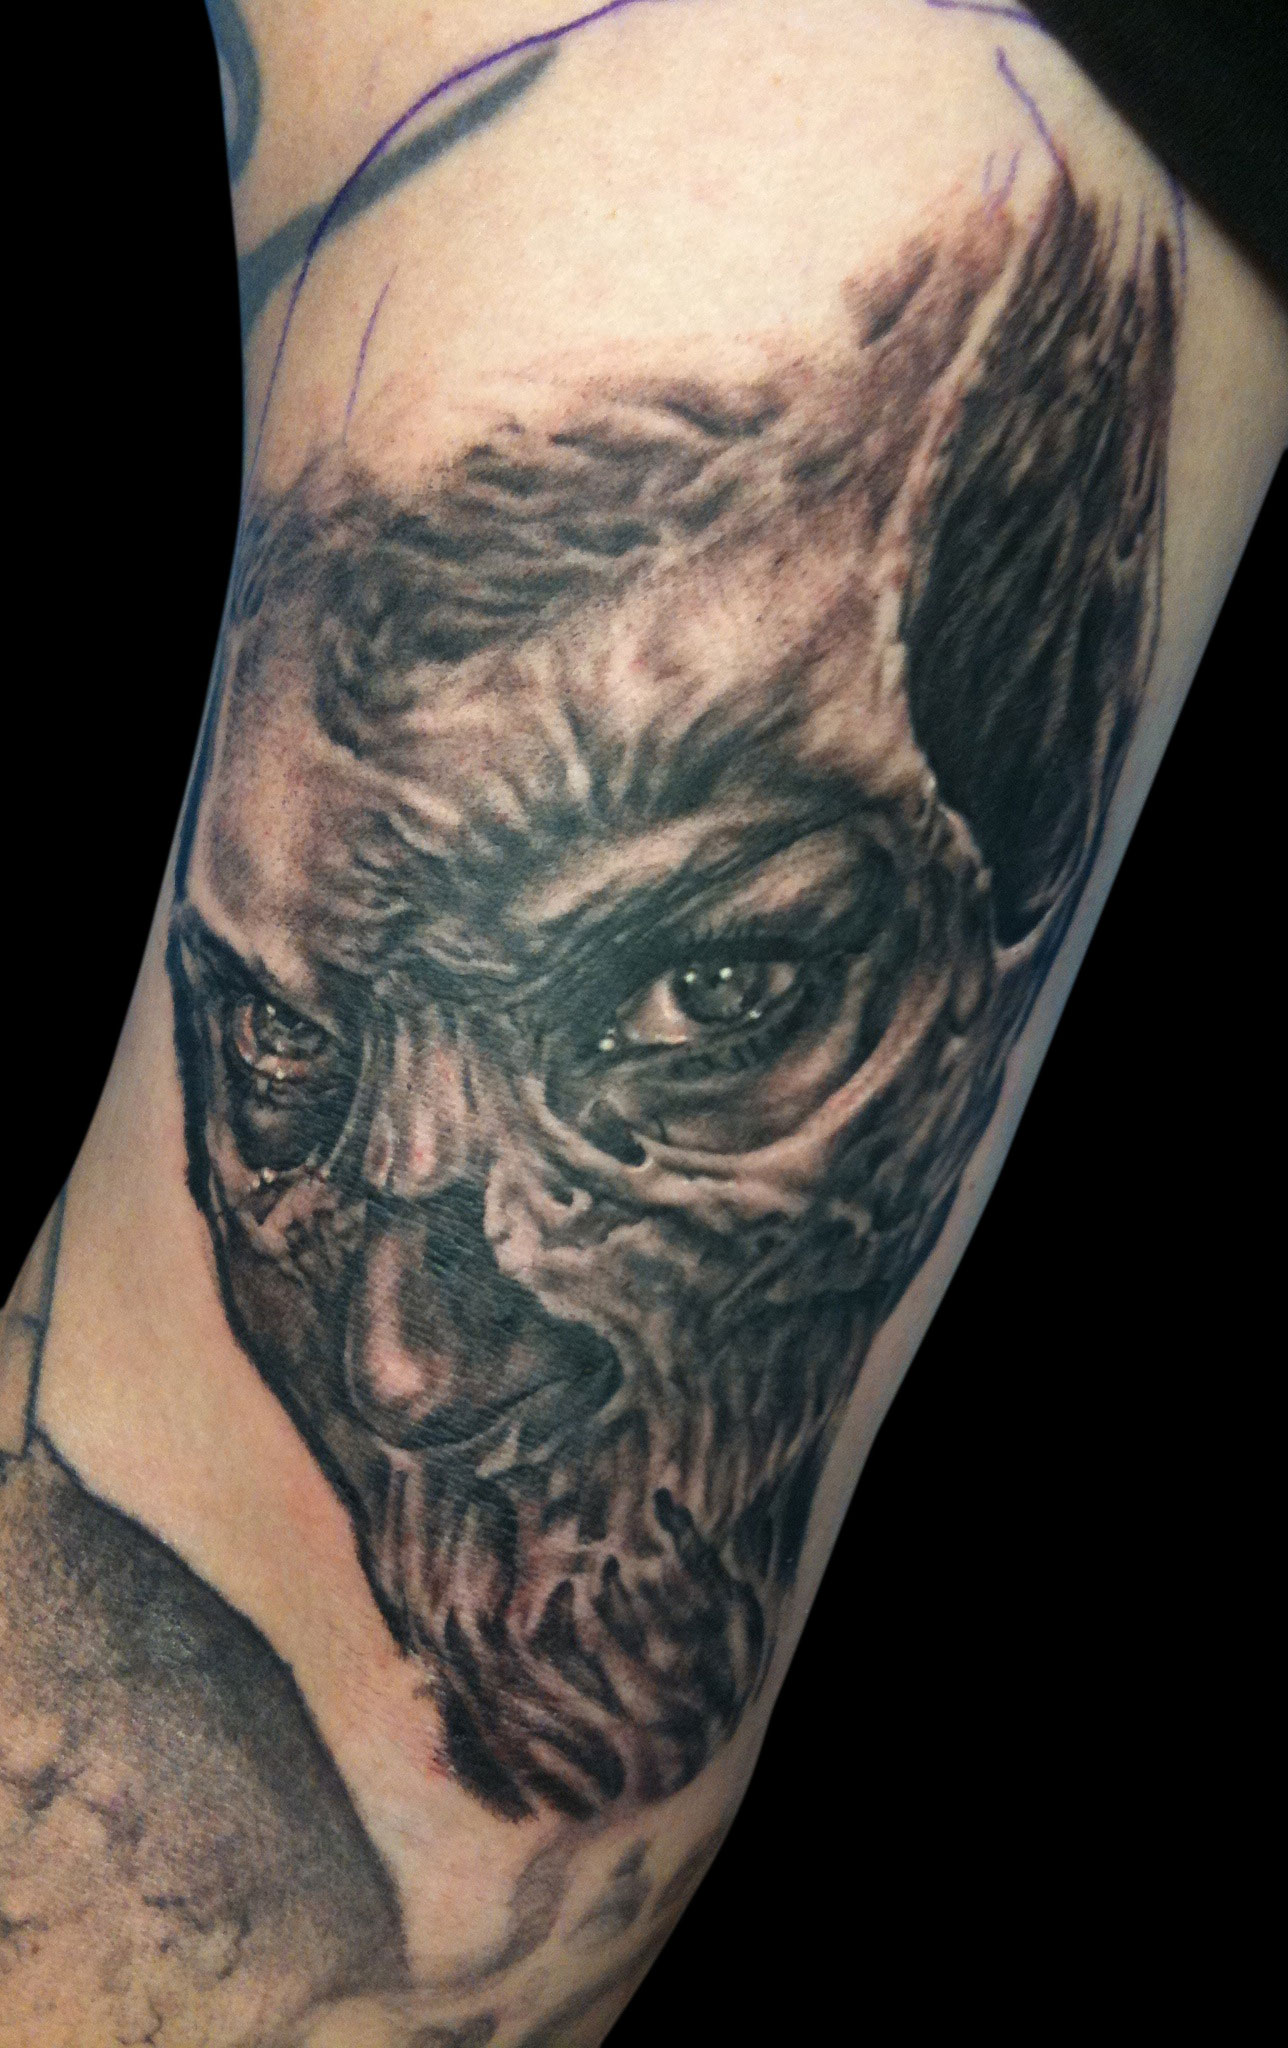 Black and Grey Skull/Woman Face Tattoo 2, (fresh)